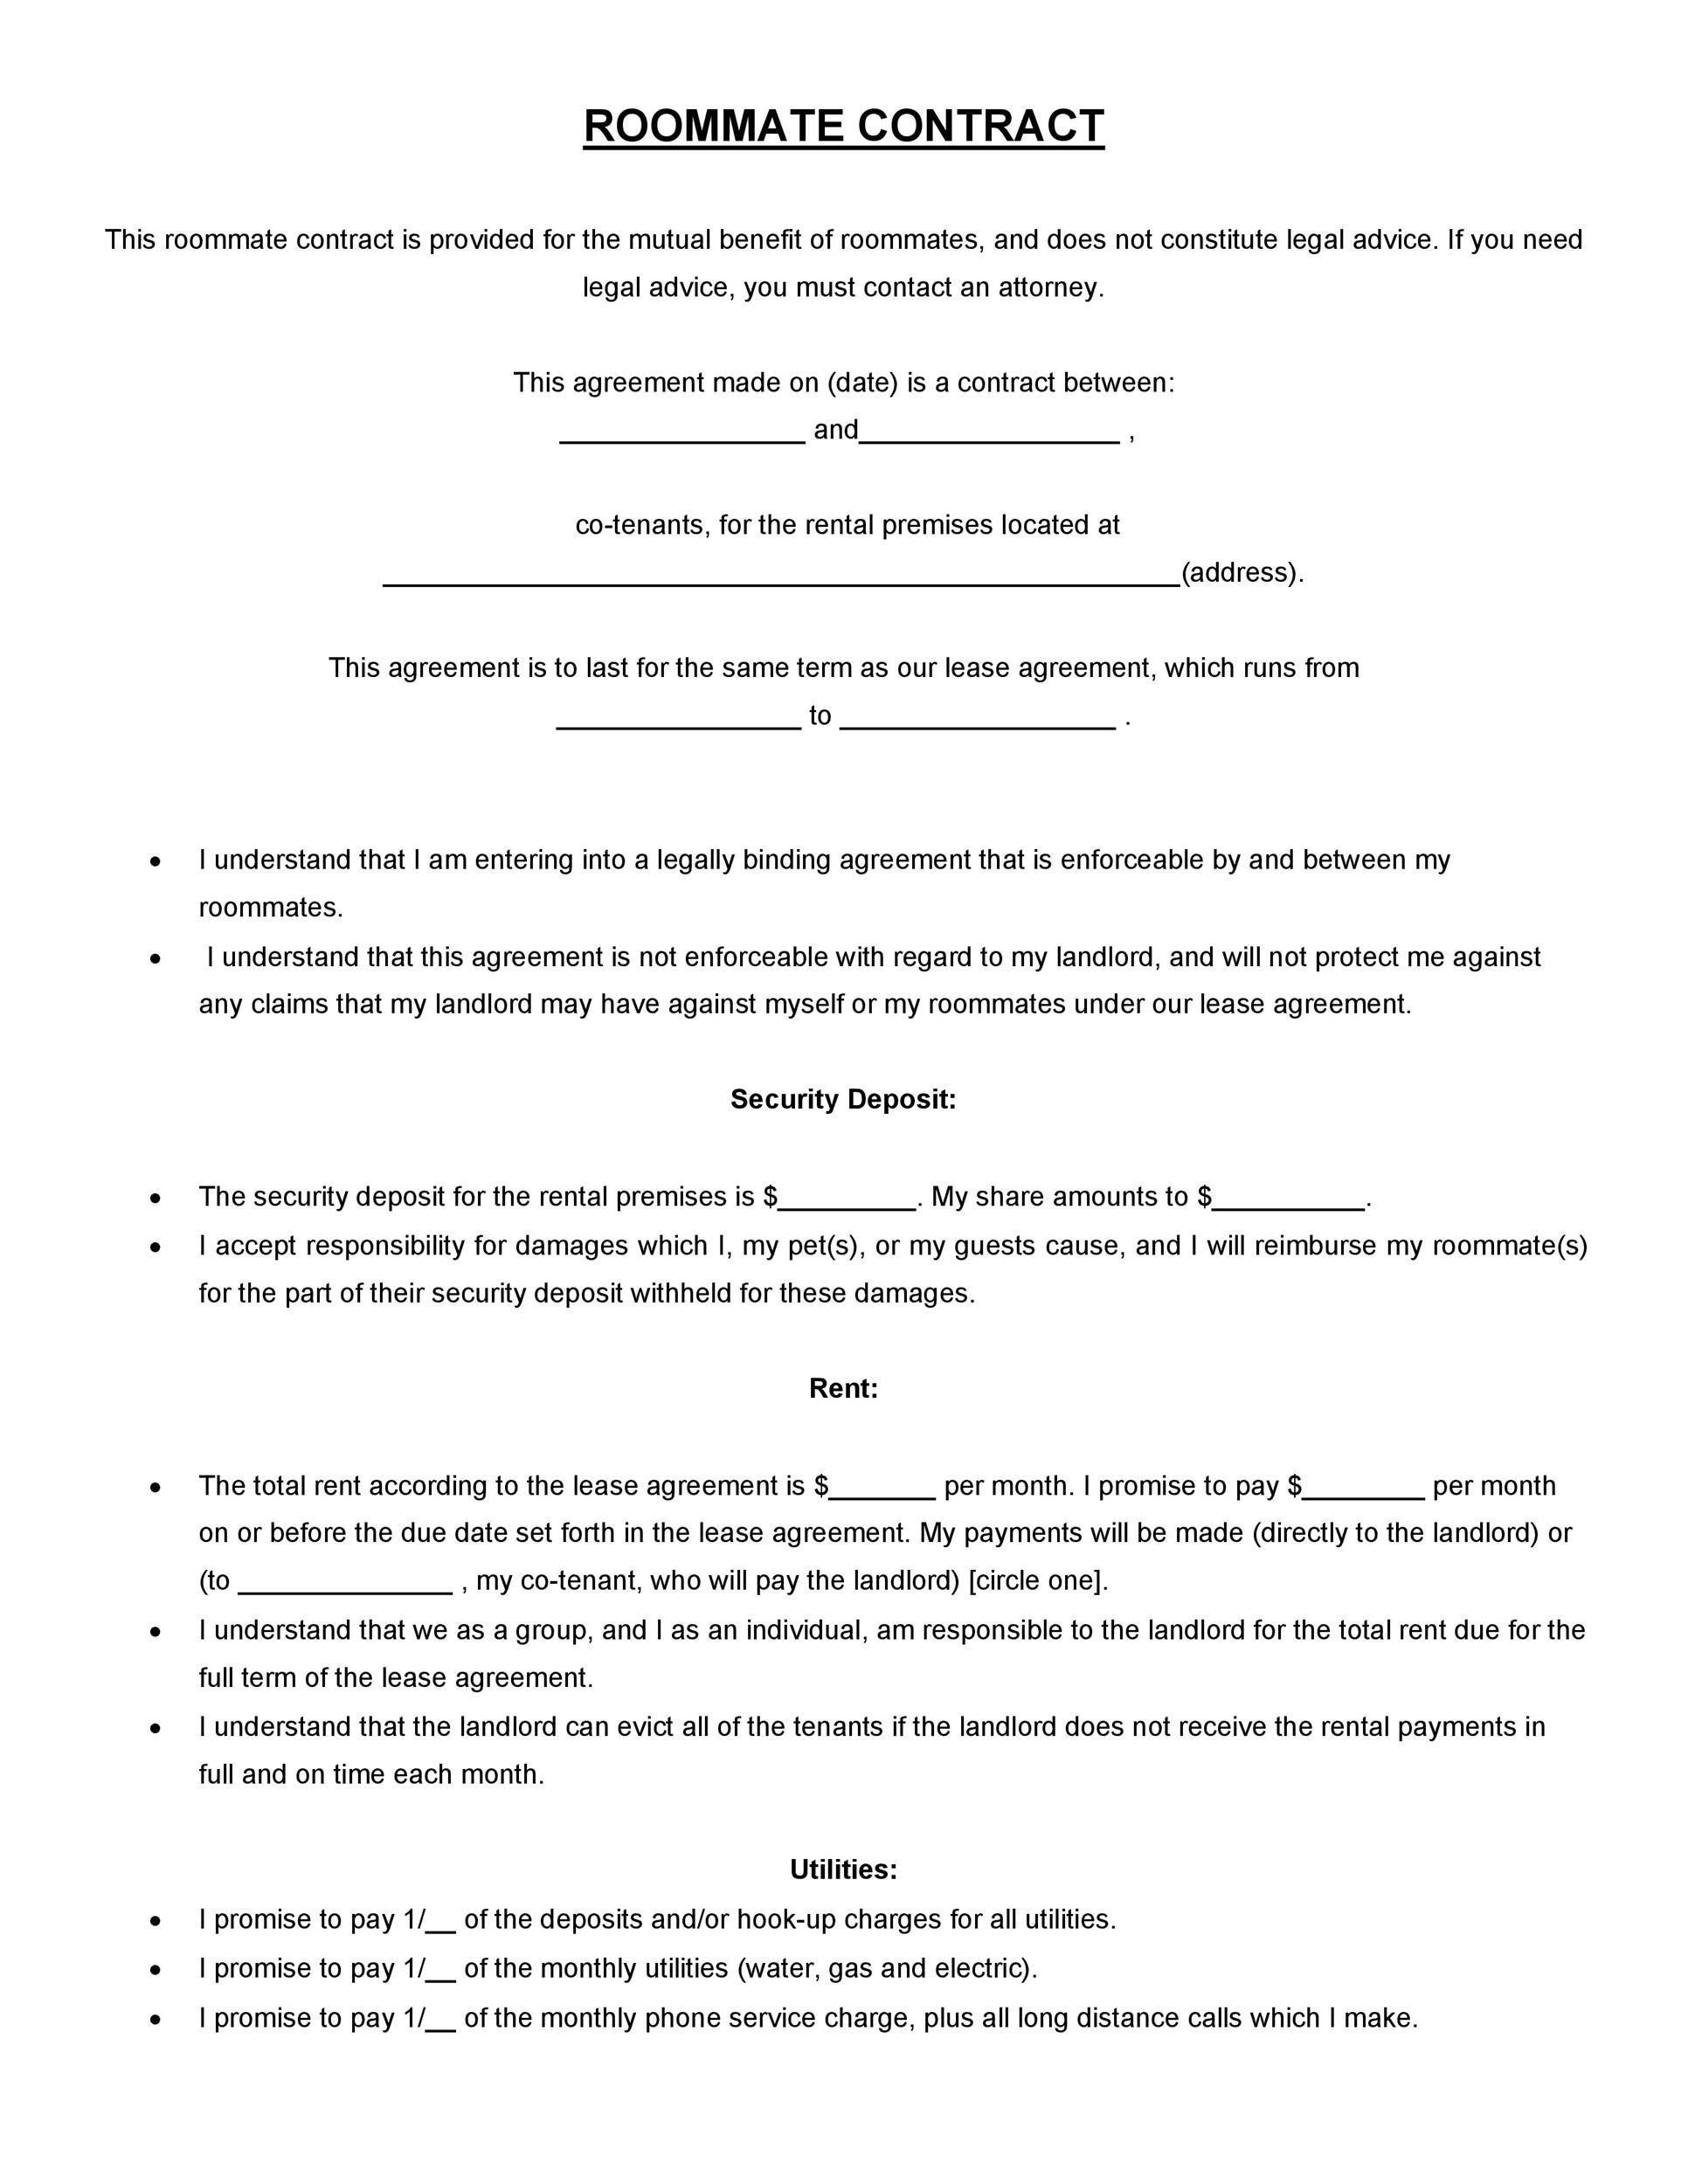 Free roommate agreement template 29